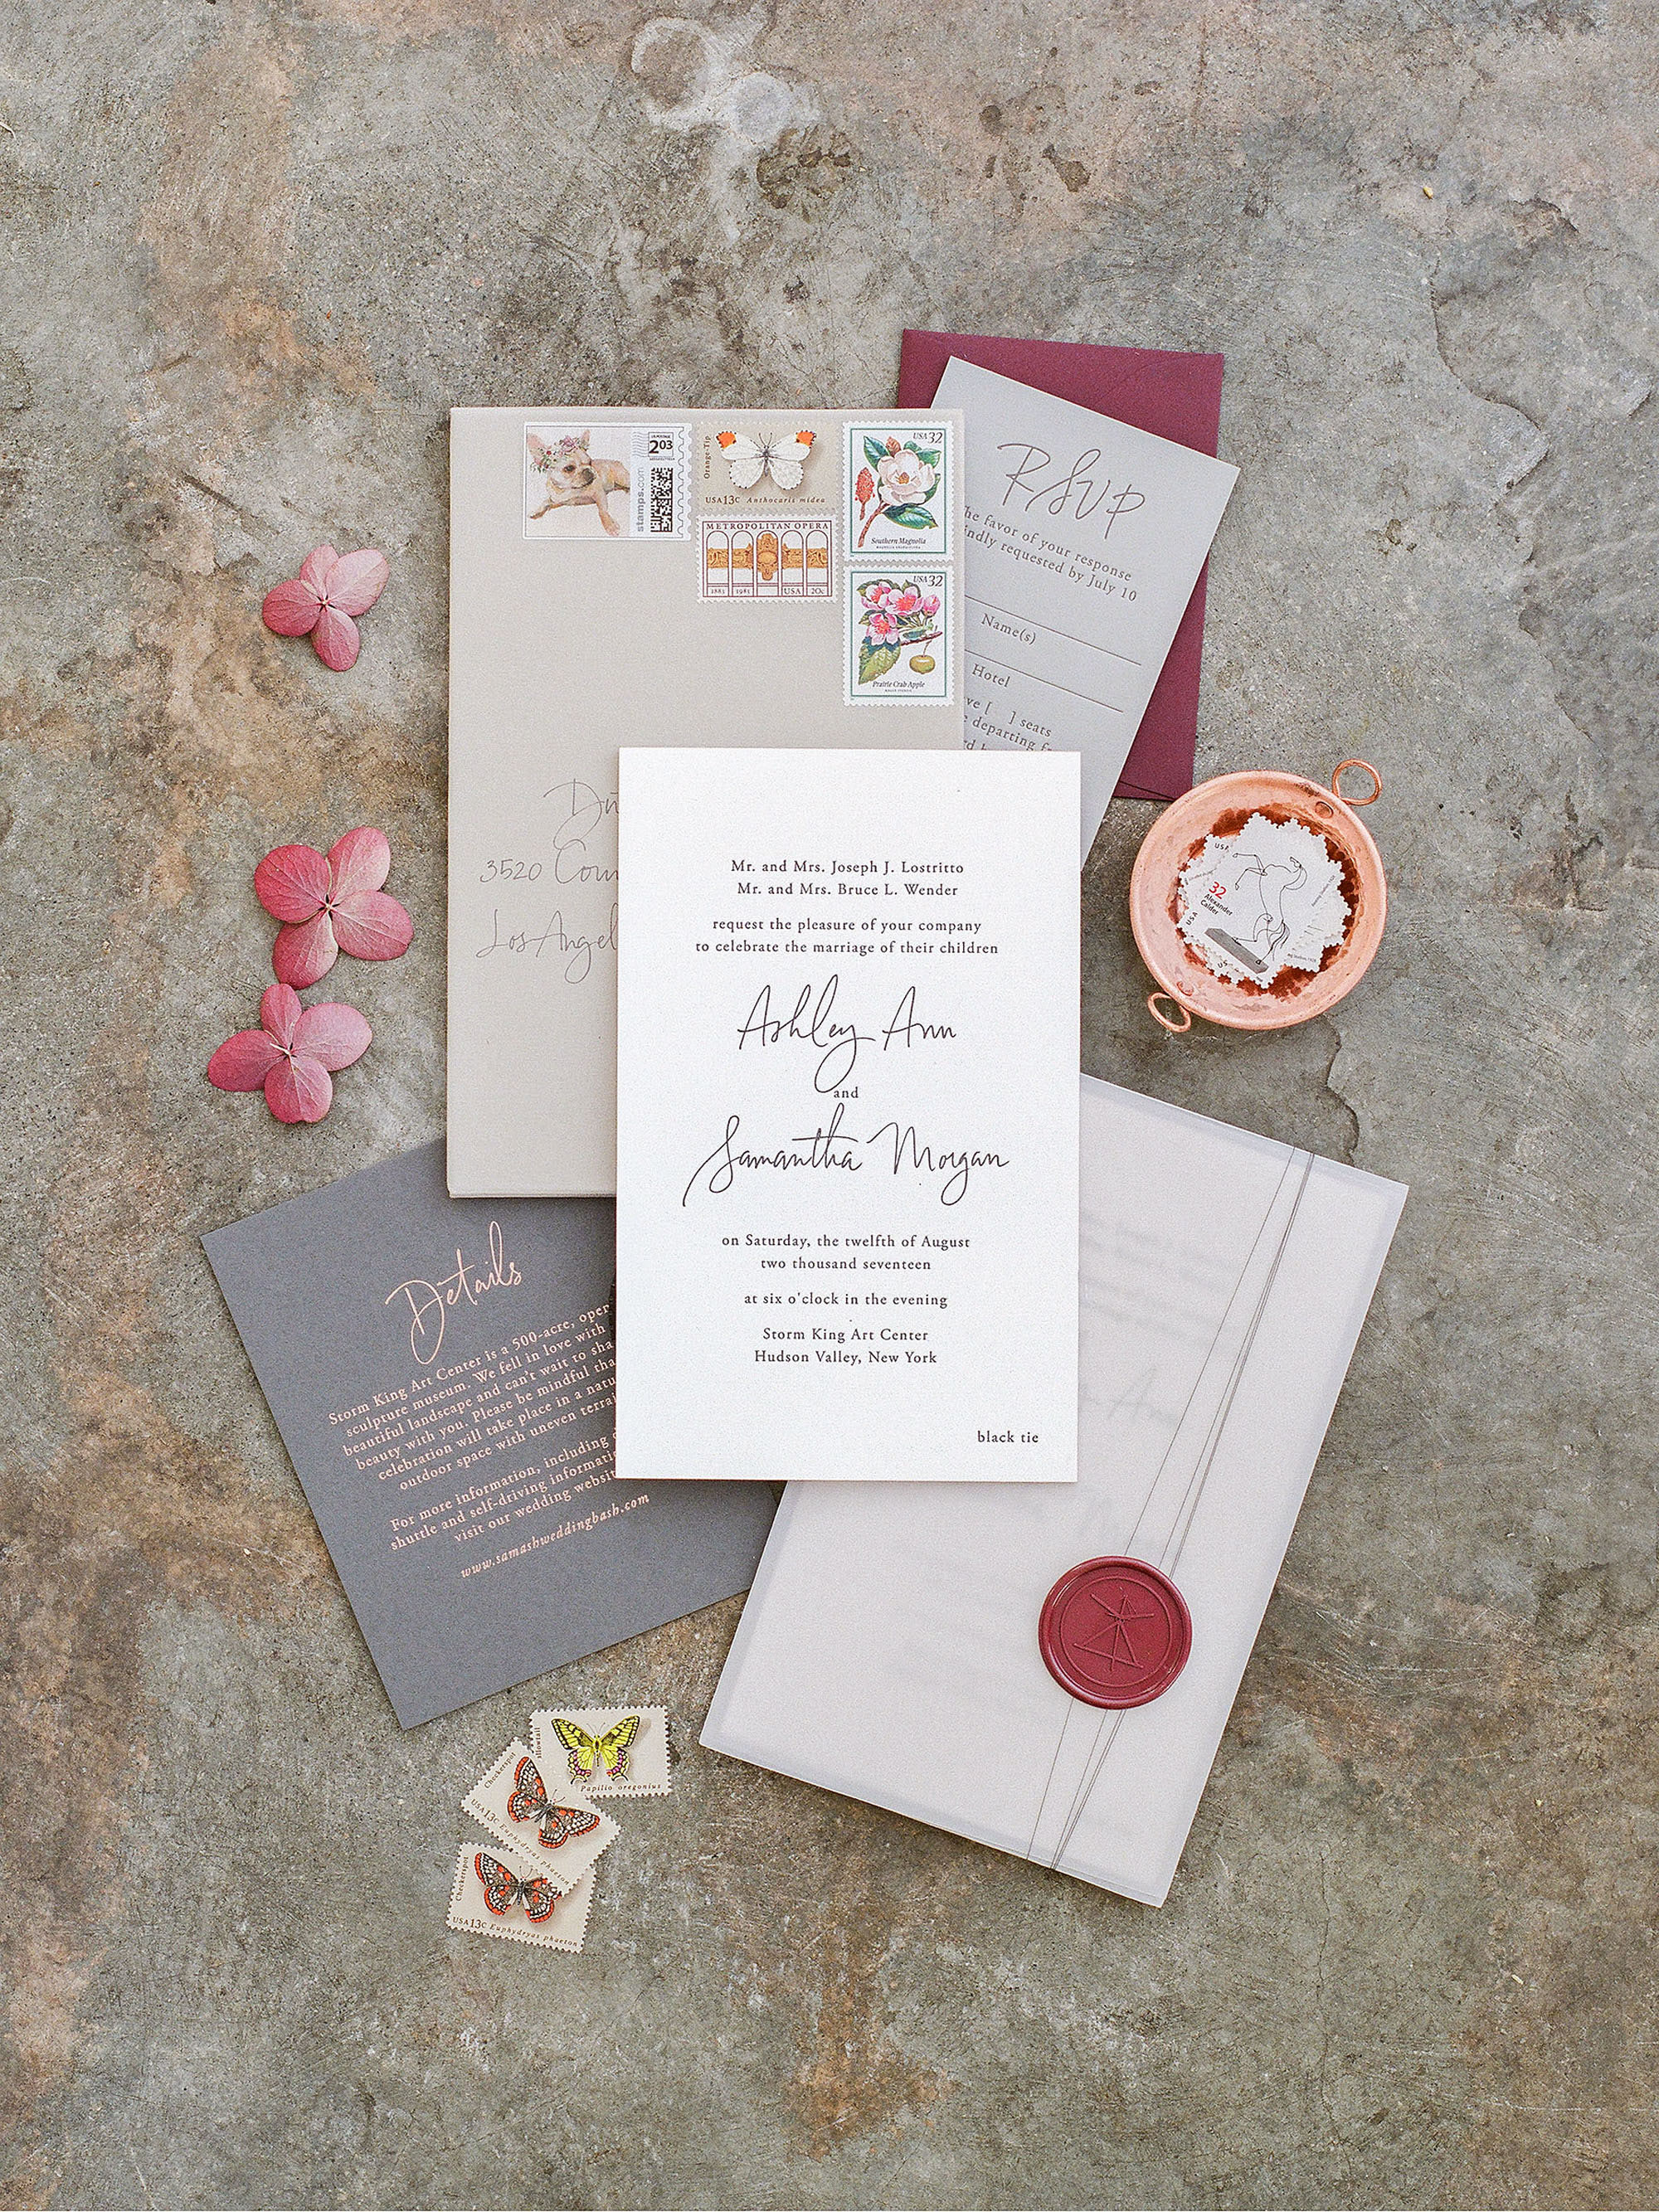 ashley samantha wedding cornwall ny invite